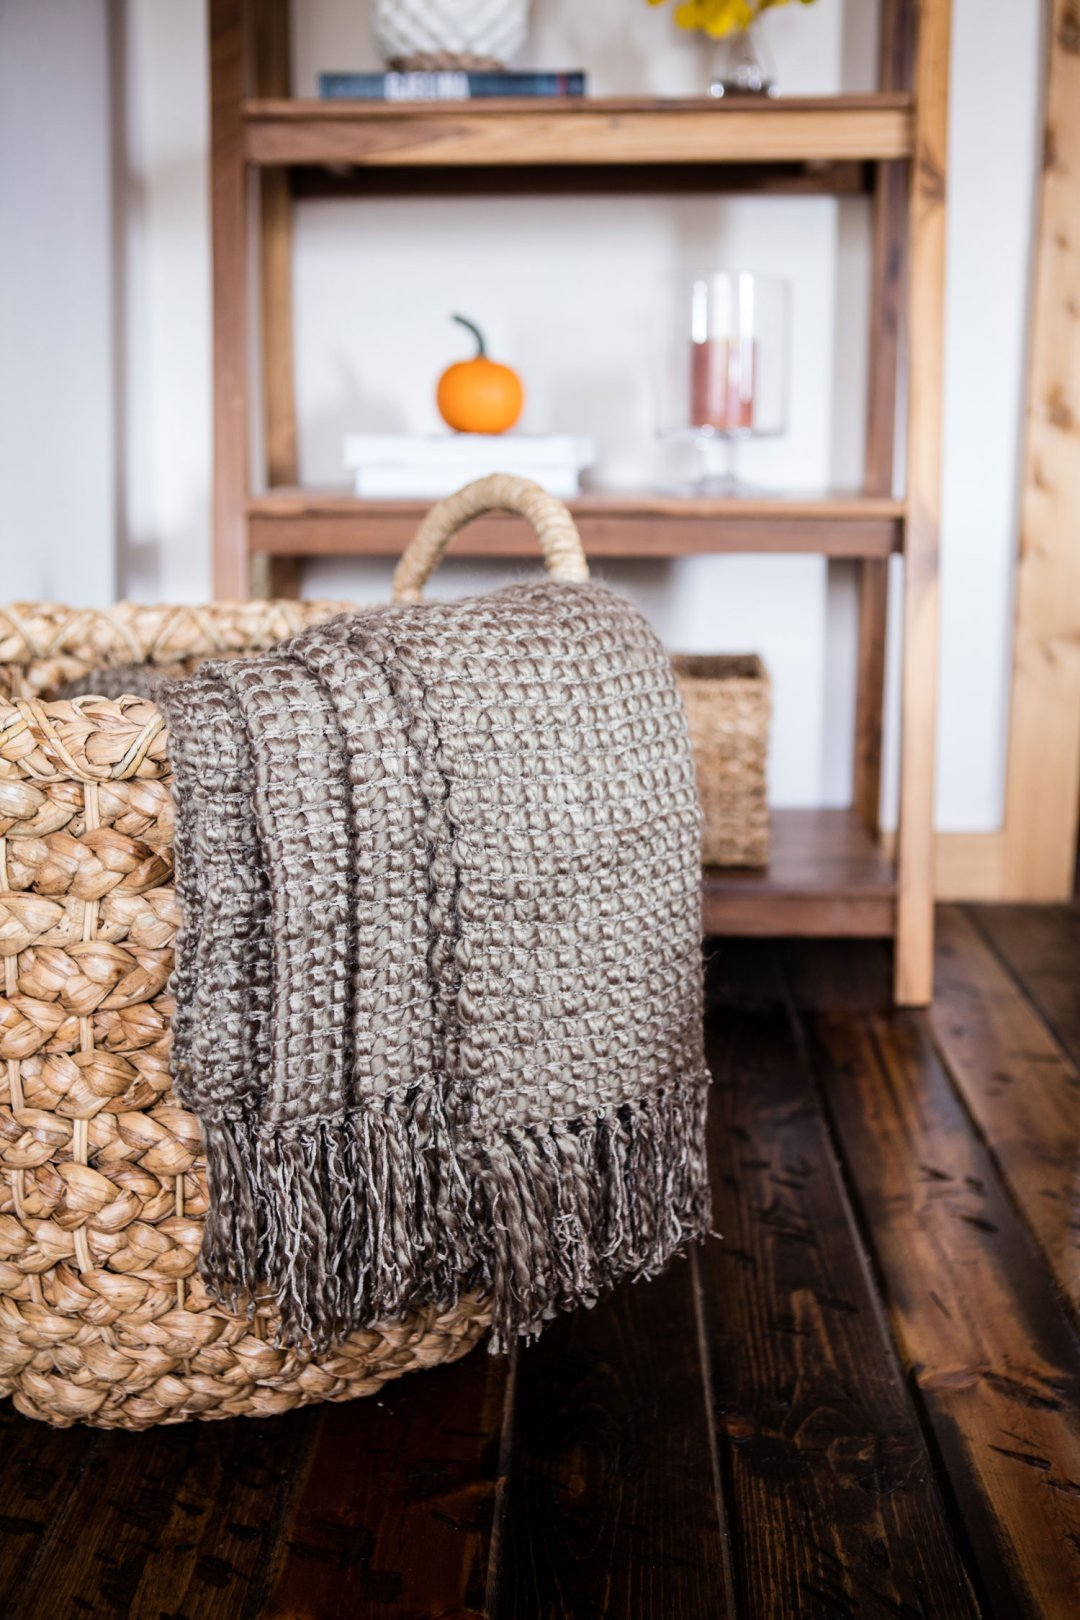 Brown throw draped over the edge of a rattan basket